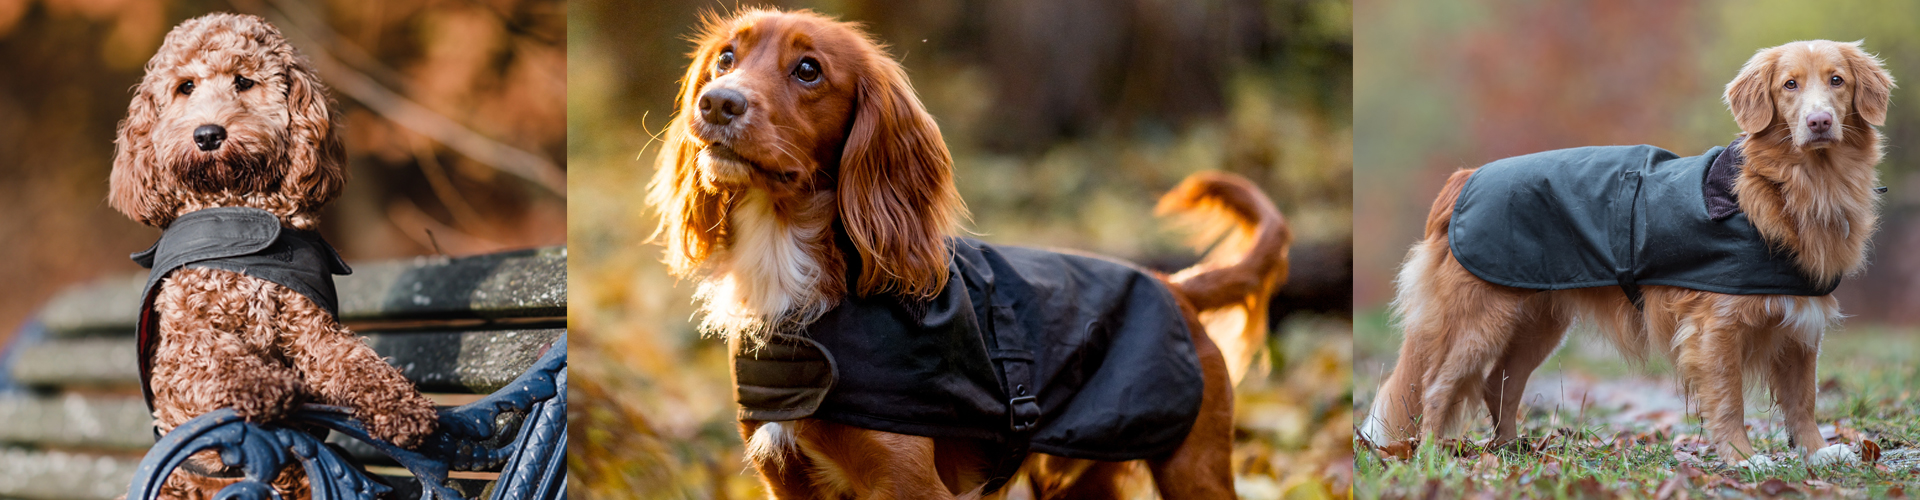 Barbour Christmas: Meet Our Christmas Barbour Dogs